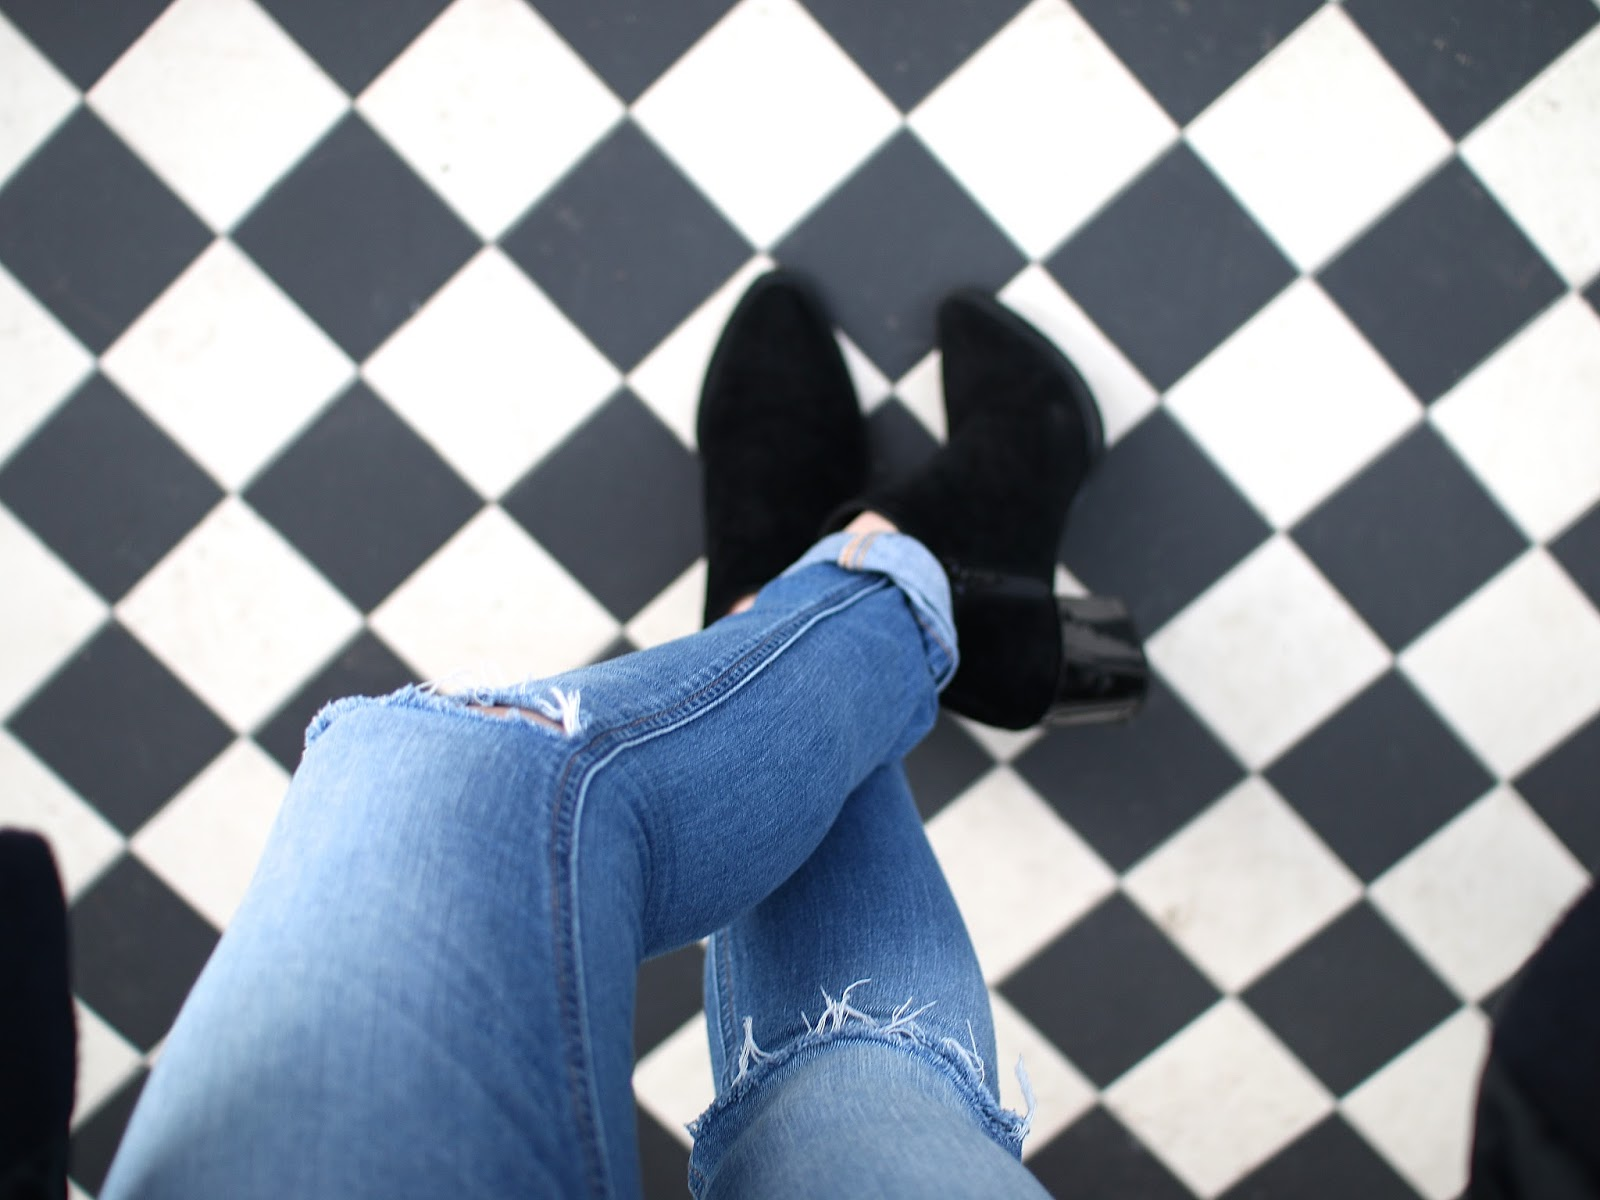 hm chunky heel for fall, ripped jeans